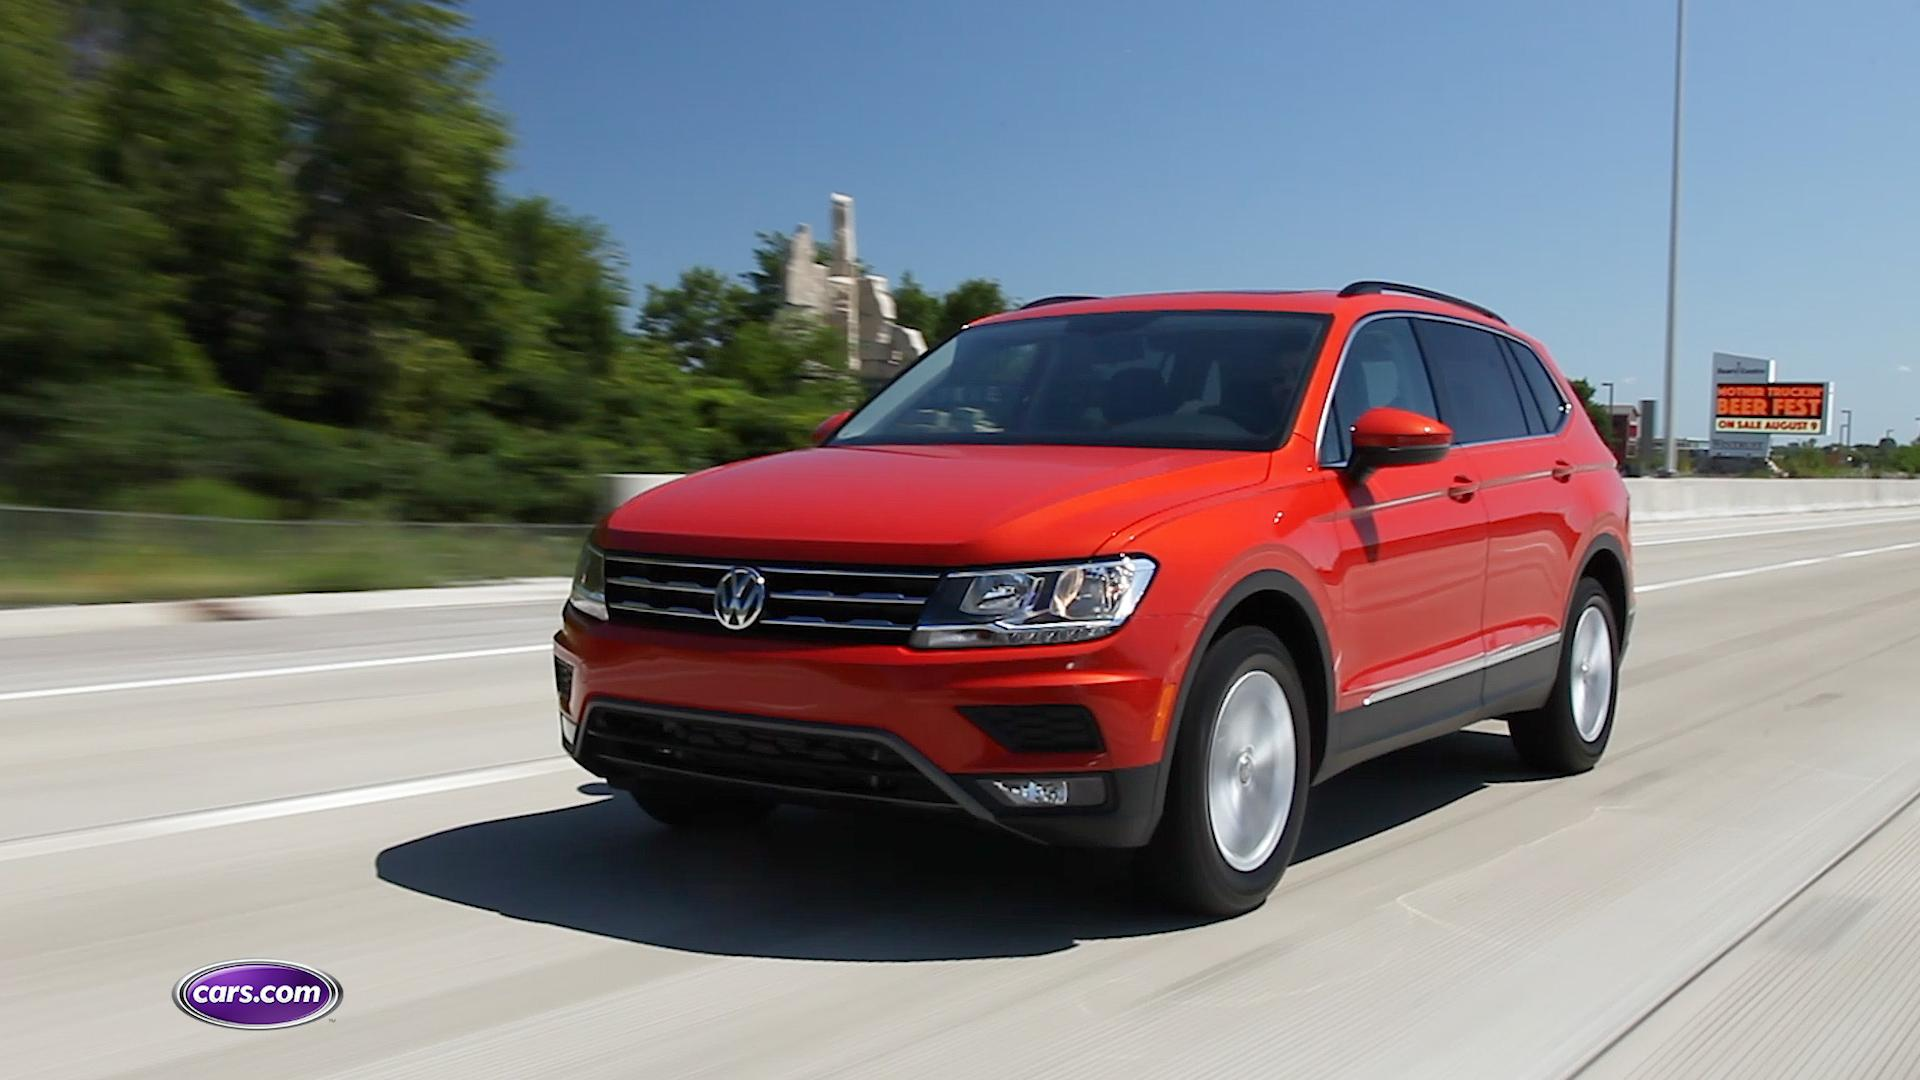 2018 Volkswagen Tiguan Video Review